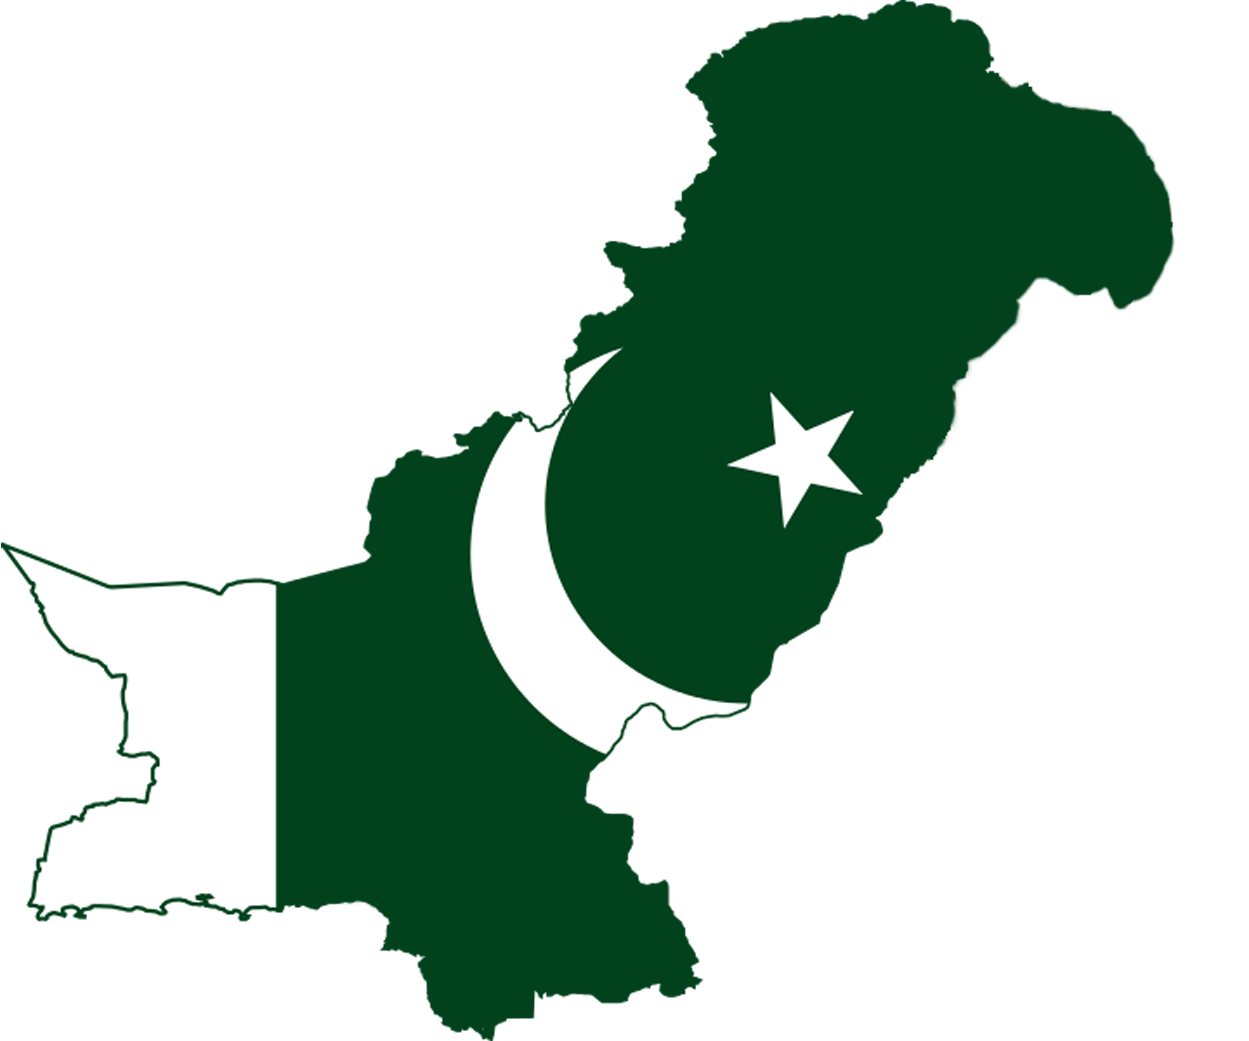 File:Flag map of Pakistan.png.